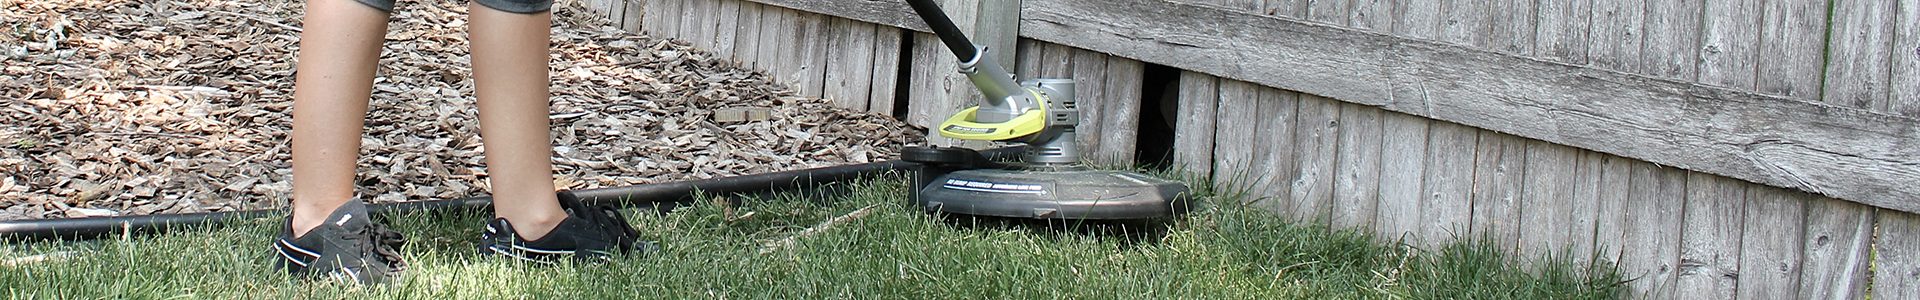 Best Battery Powered String Trimmers Lawn Trimmers